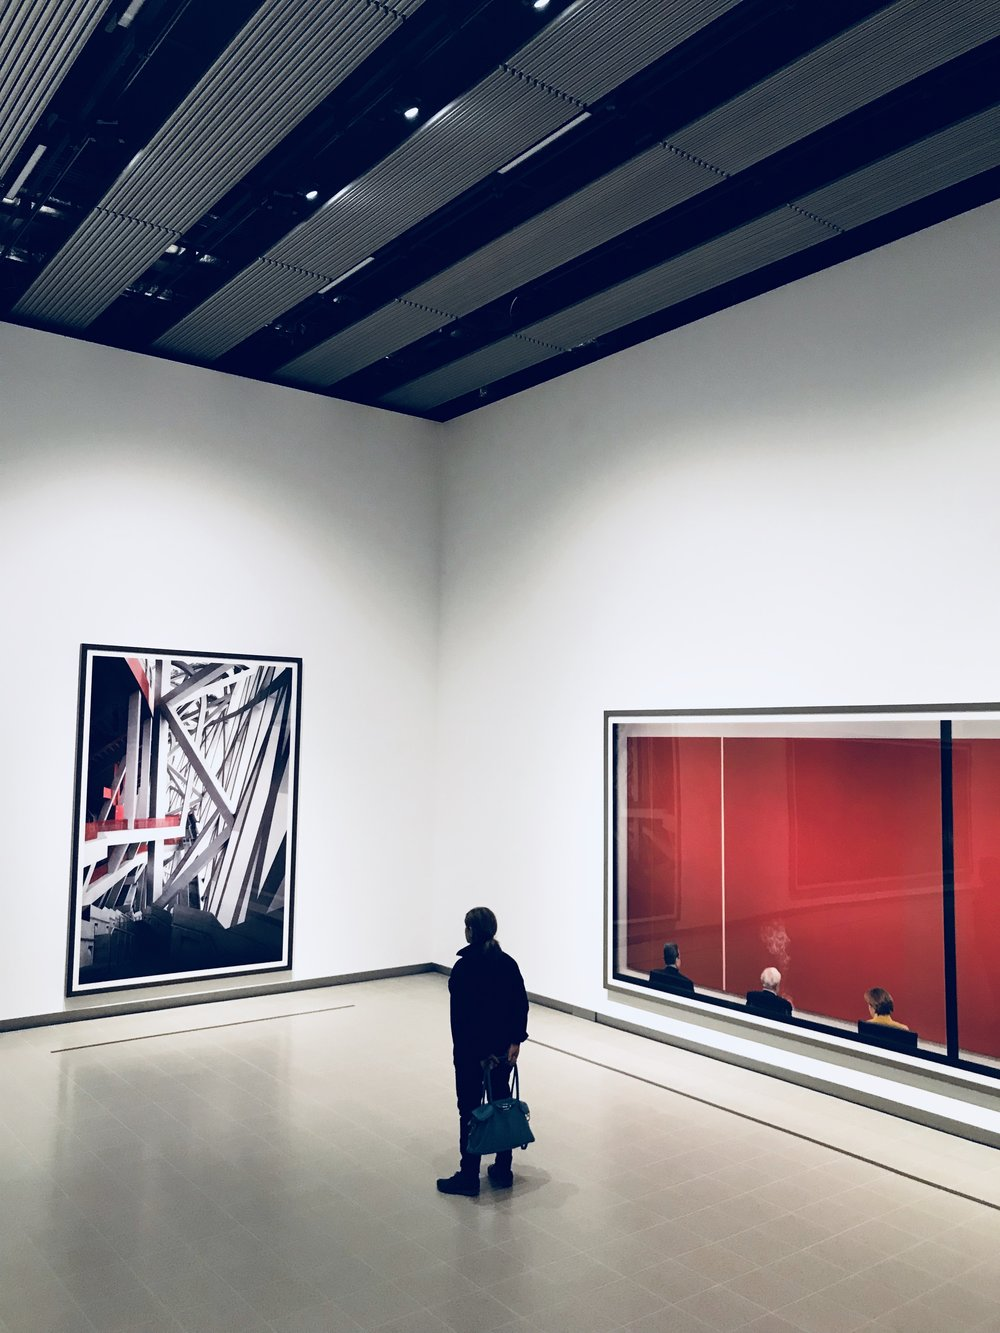 The space at the gallery is superb making images pop, the grandeur of the exhibits in this huge area is rather mesmerising